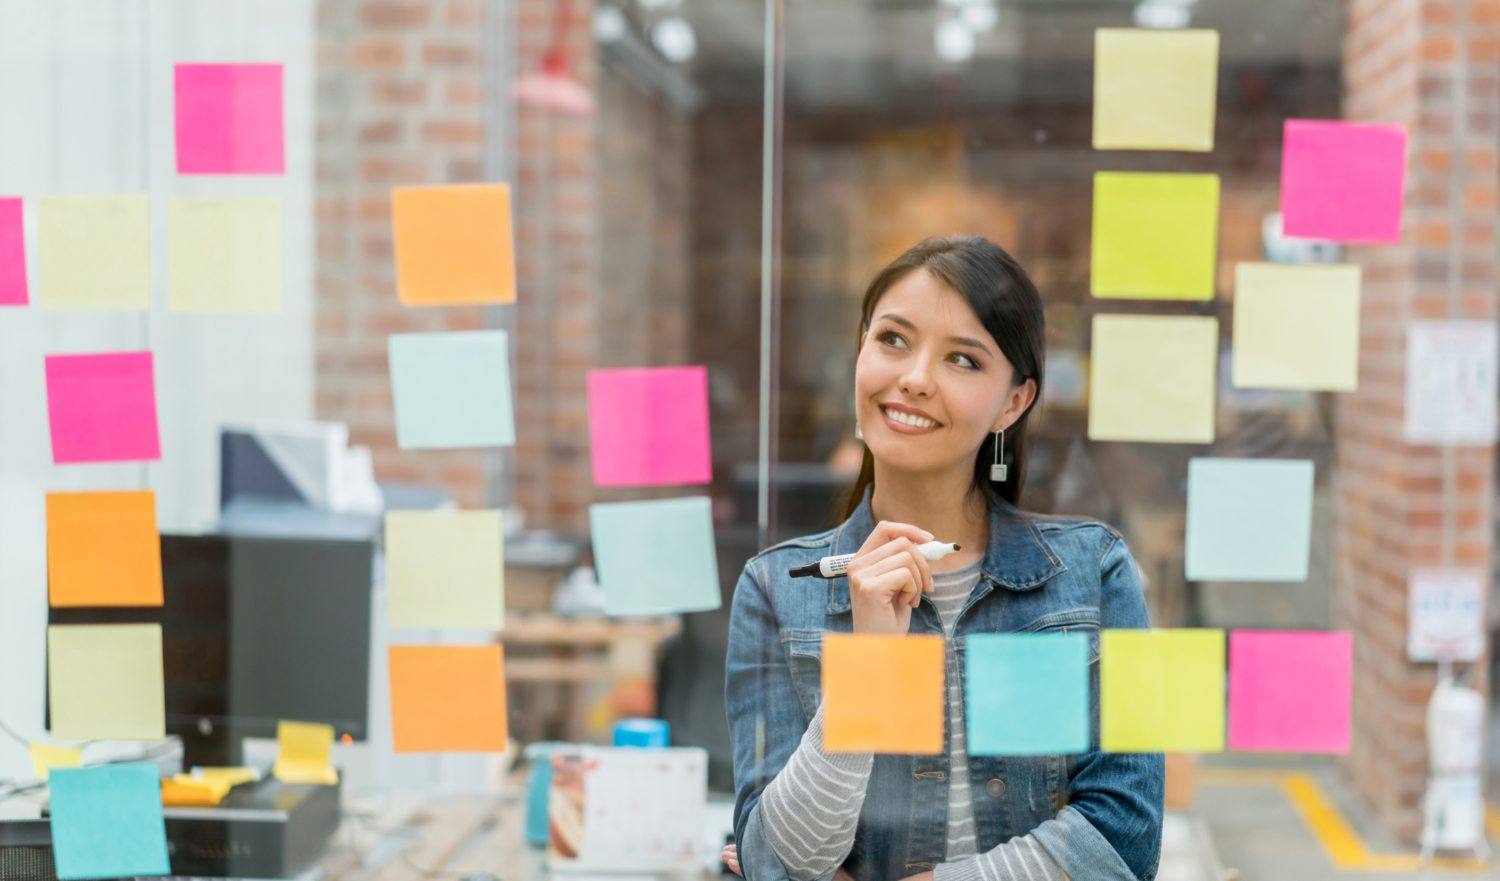 Latin American woman thinking of creative sales ideas at the office to put in a wall chart